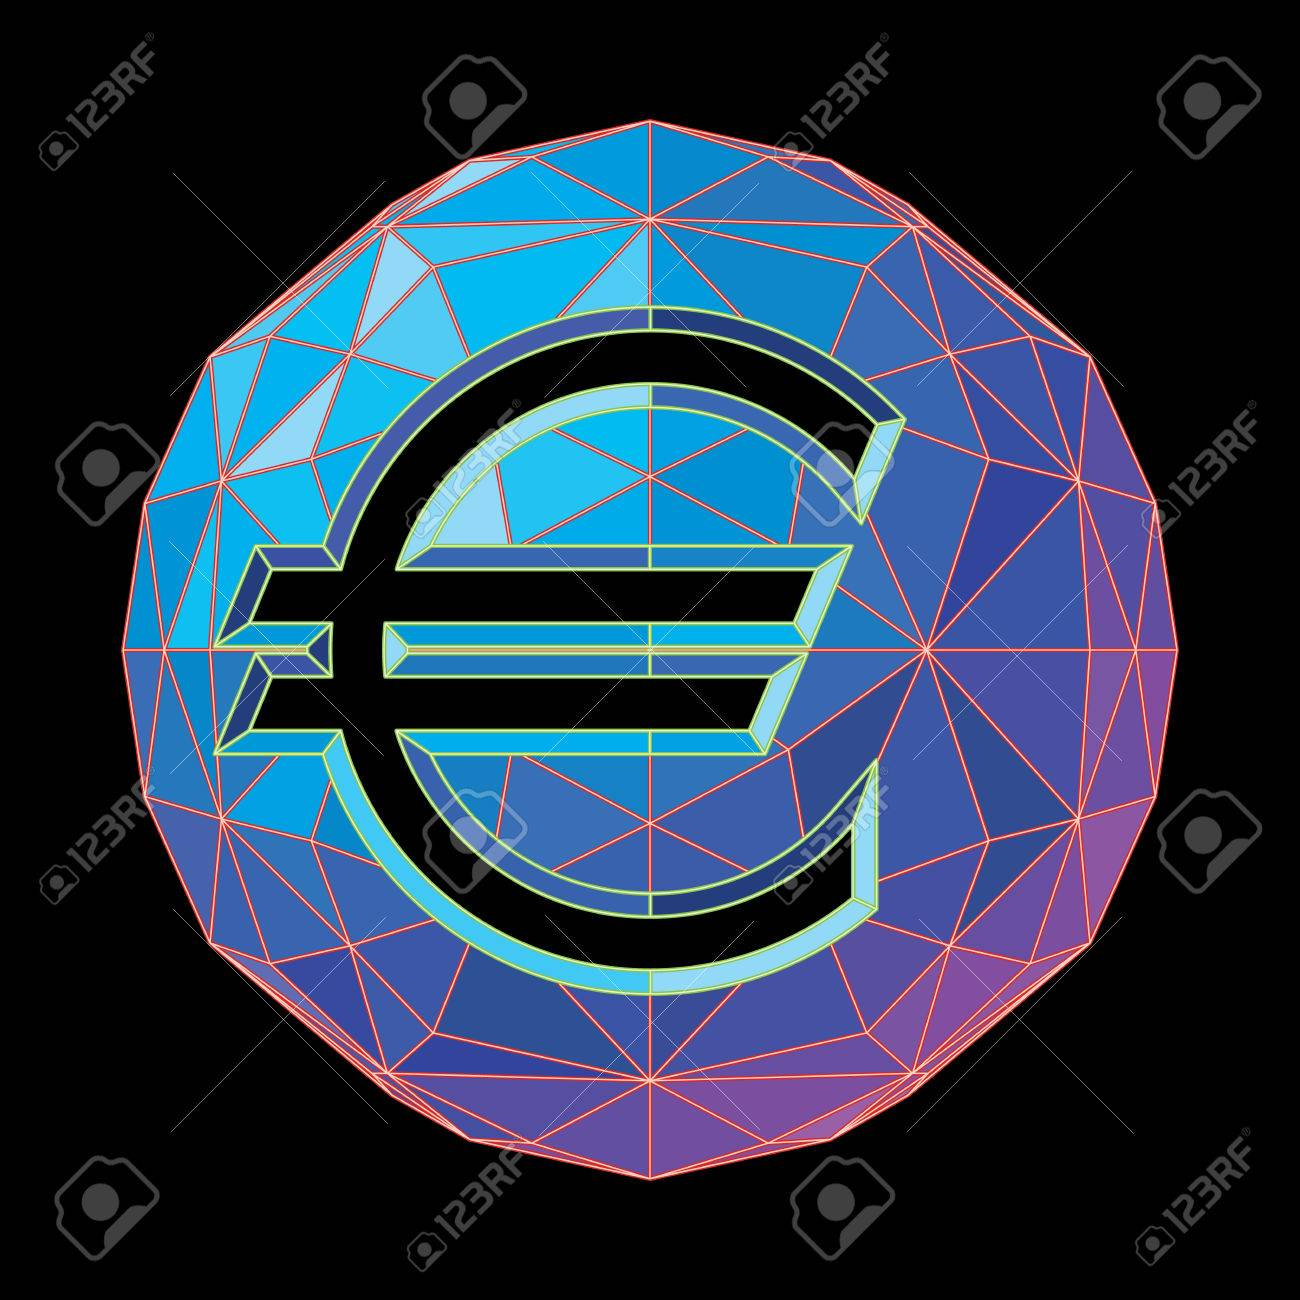 The Euro Symbol On A Circular Background Of Blue Shades Royalty Fri